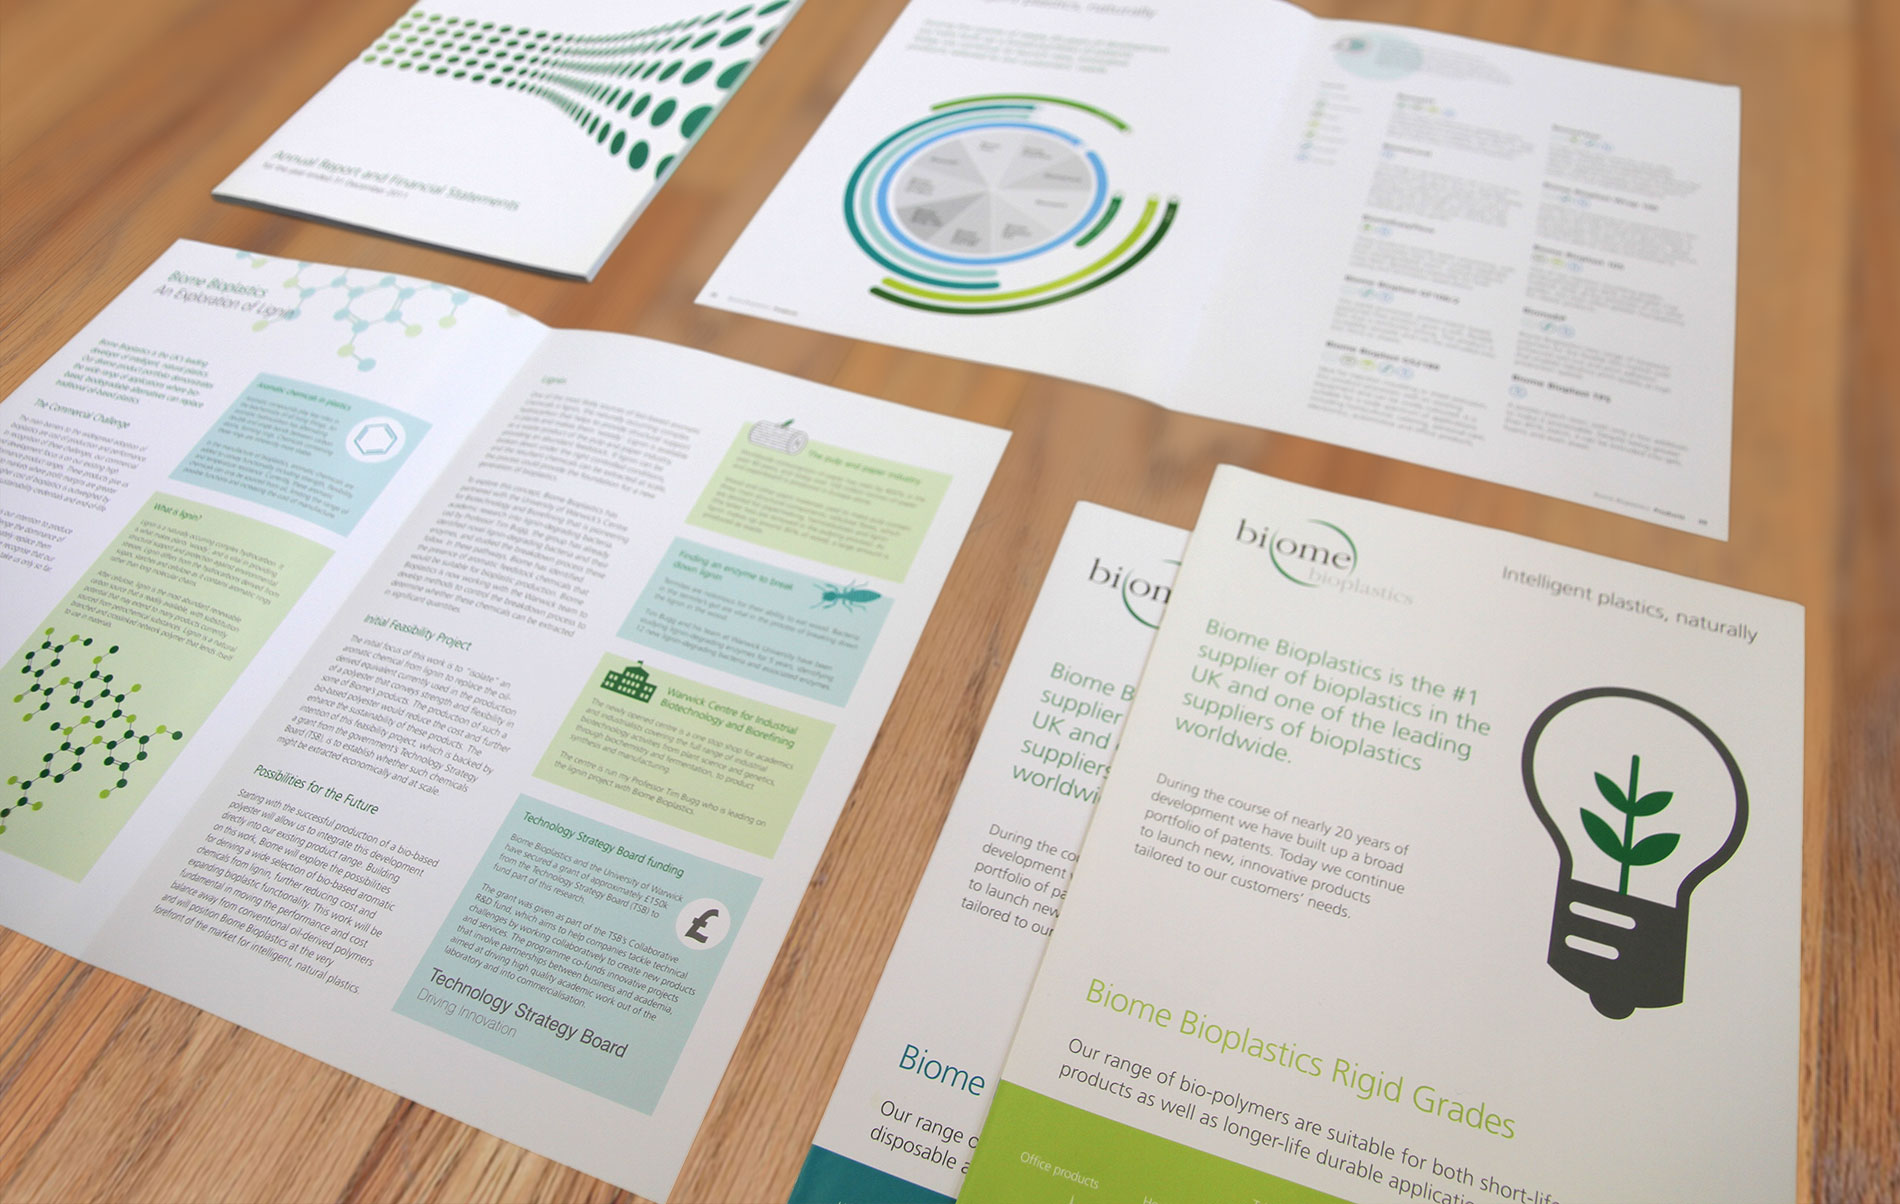 Full Marketing Material Brochure for Biome Intelligent Bioplastics & Industry Biotechnology